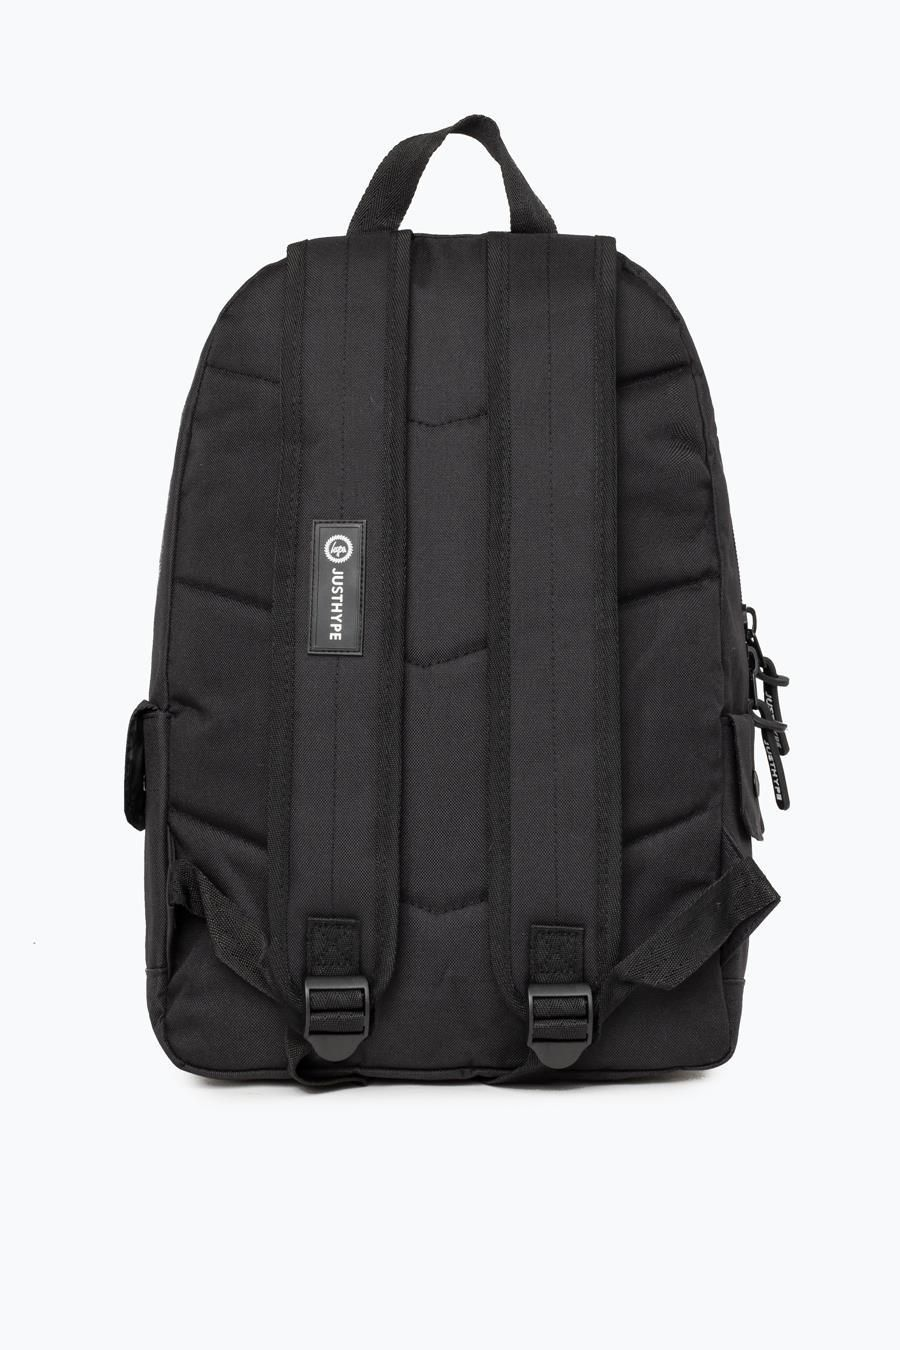 Hype Black Midi Backpack